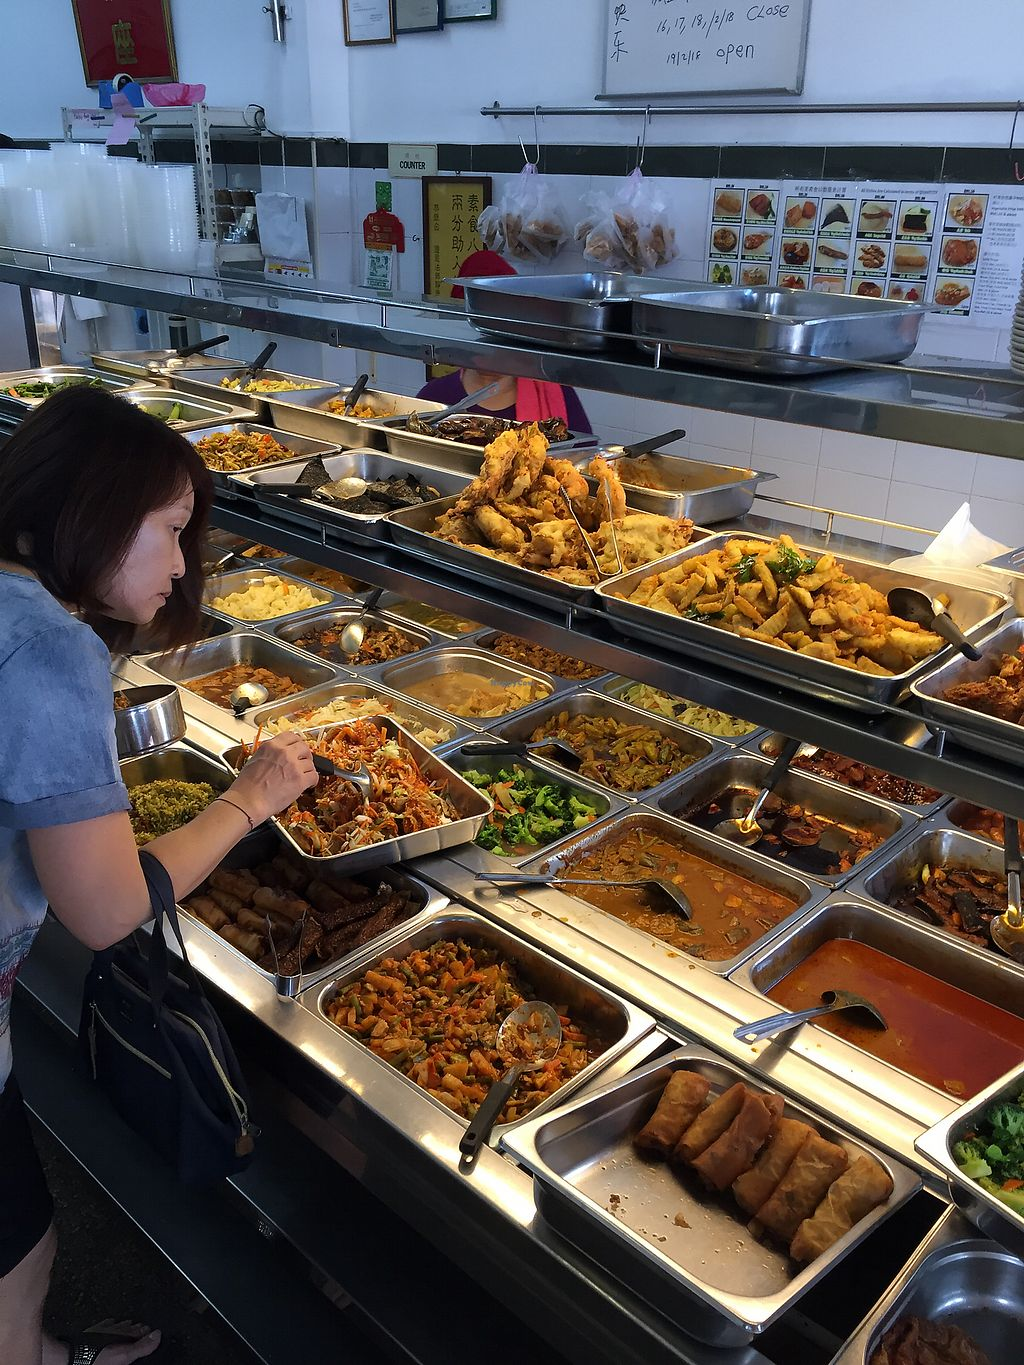 "Photo of Ee Beng Vegetarian Food Center  by <a href=""/members/profile/ClaudiaMarie"">ClaudiaMarie</a> <br/>Dig in!! <br/> February 22, 2018  - <a href='/contact/abuse/image/131/362276'>Report</a>"